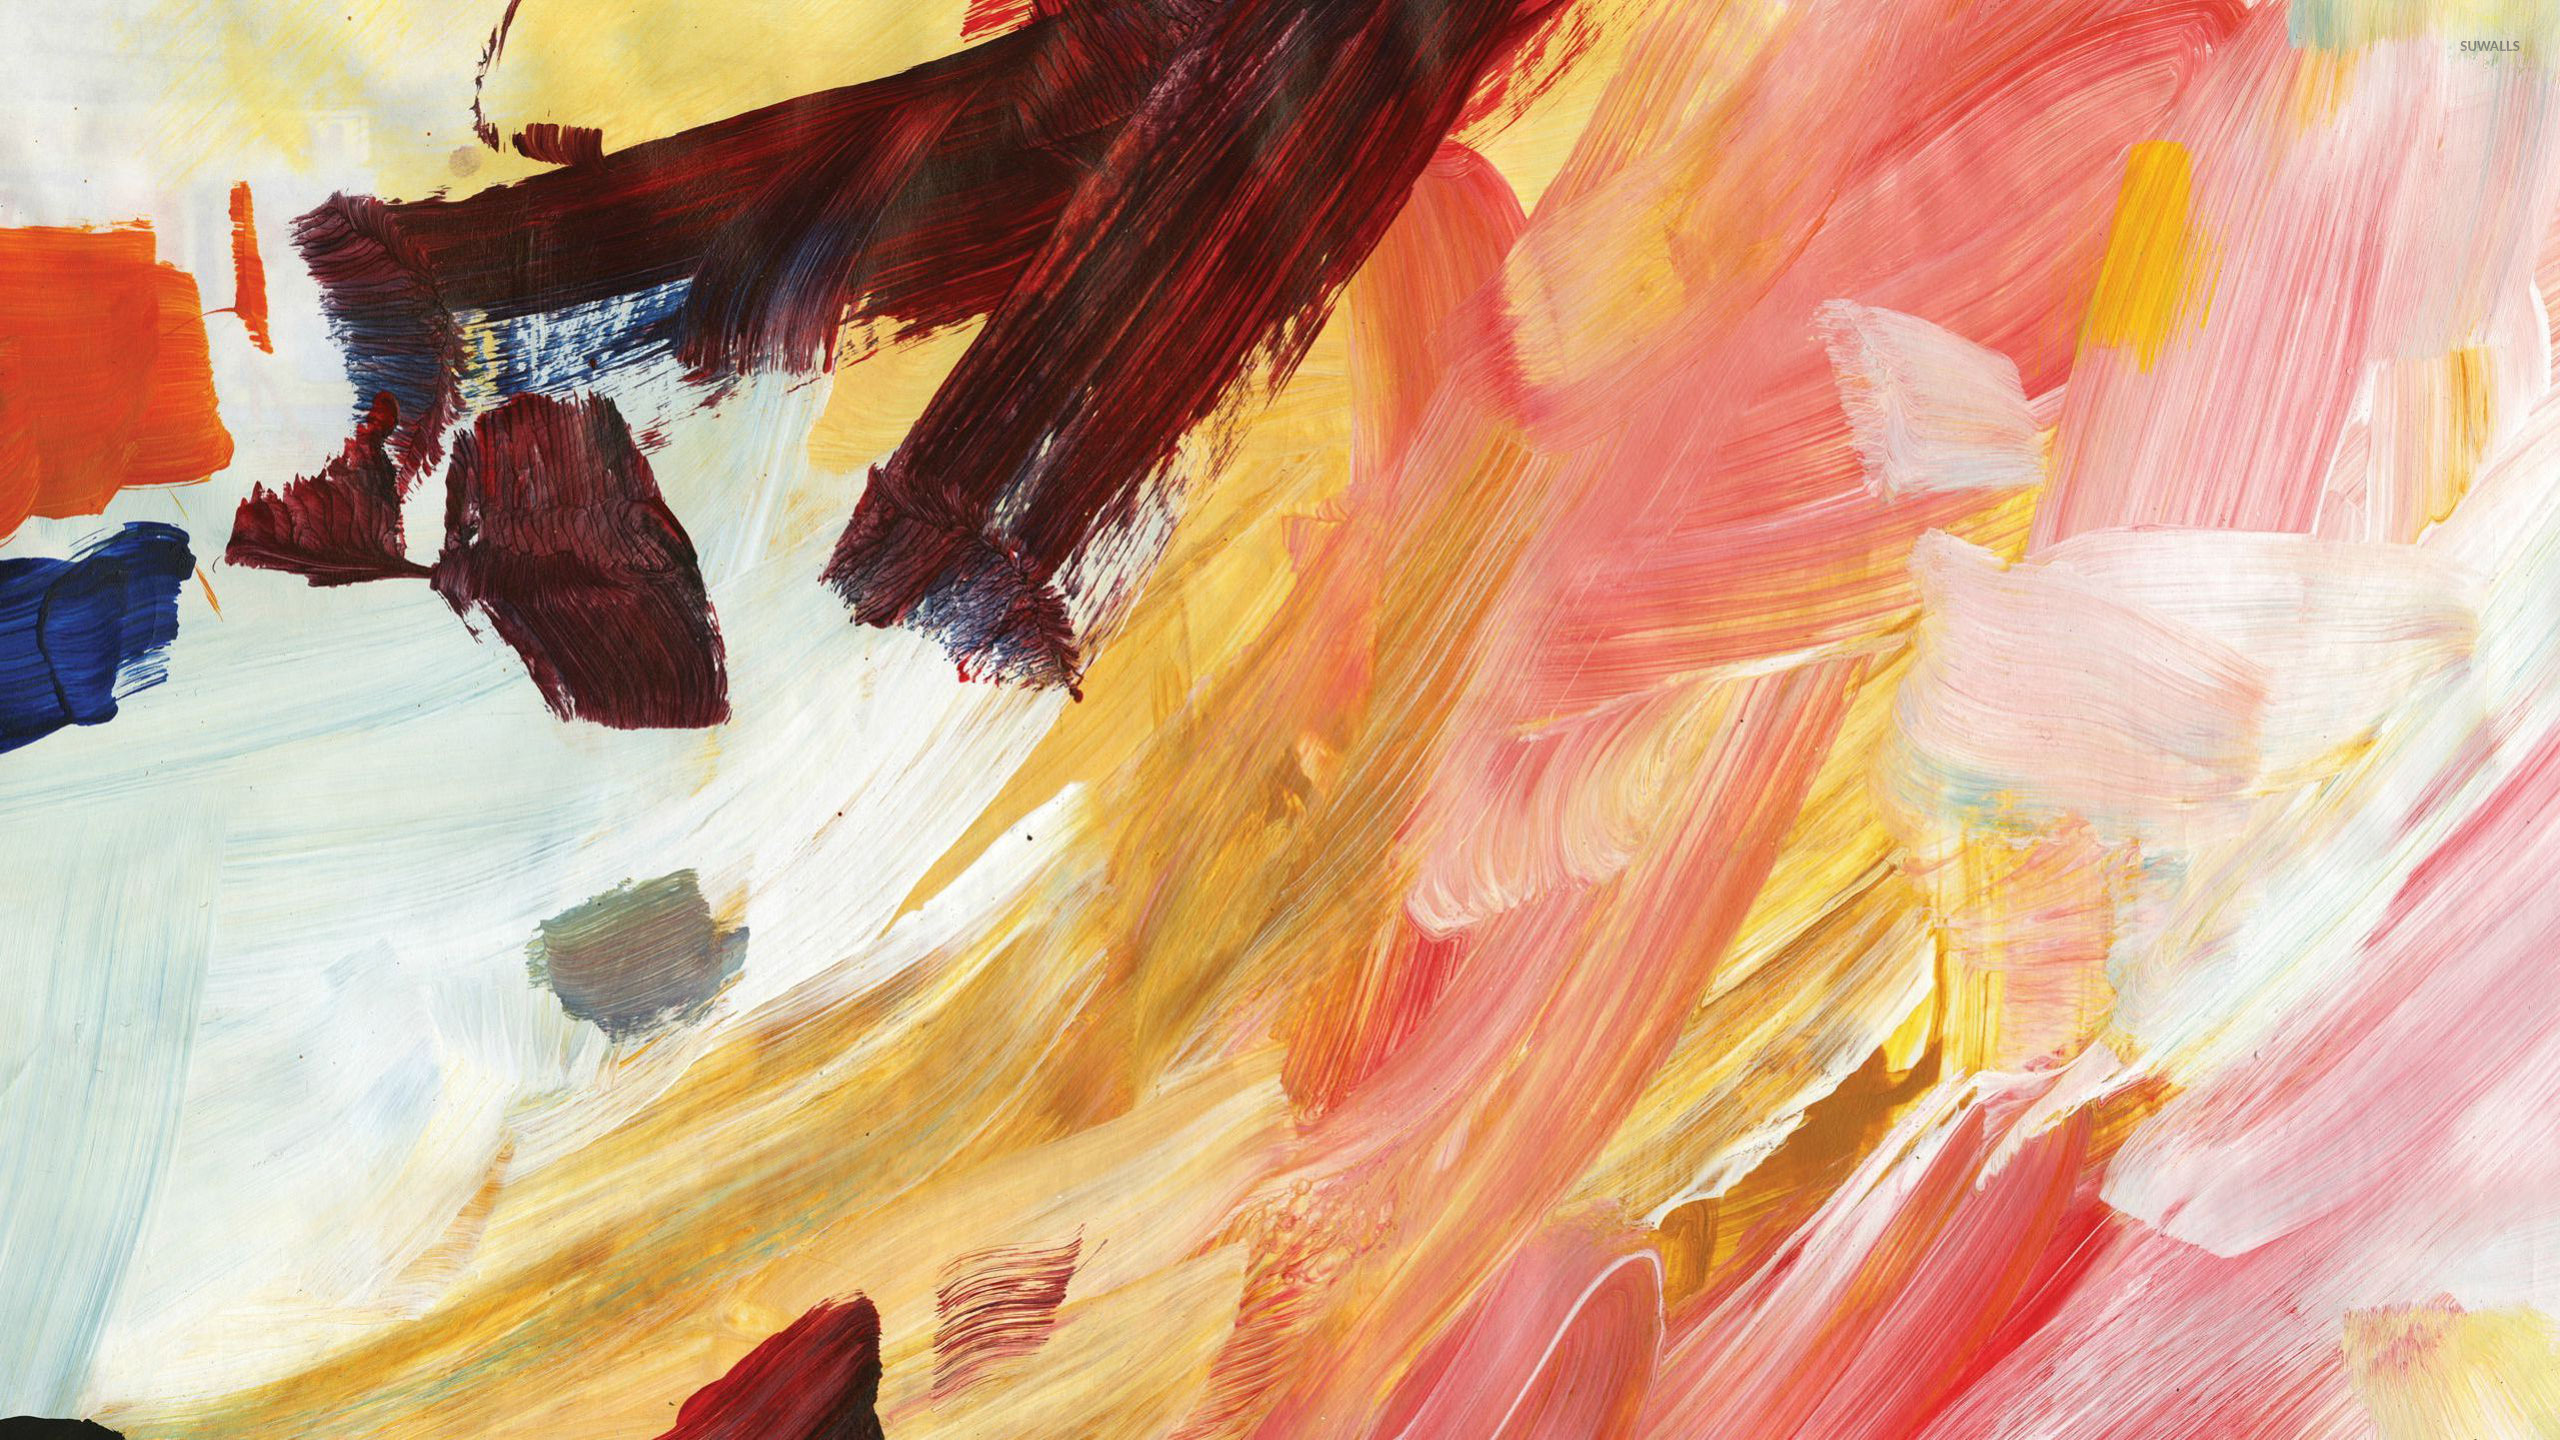 Paint Strokes 5 Wallpaper Artistic Wallpapers 28680